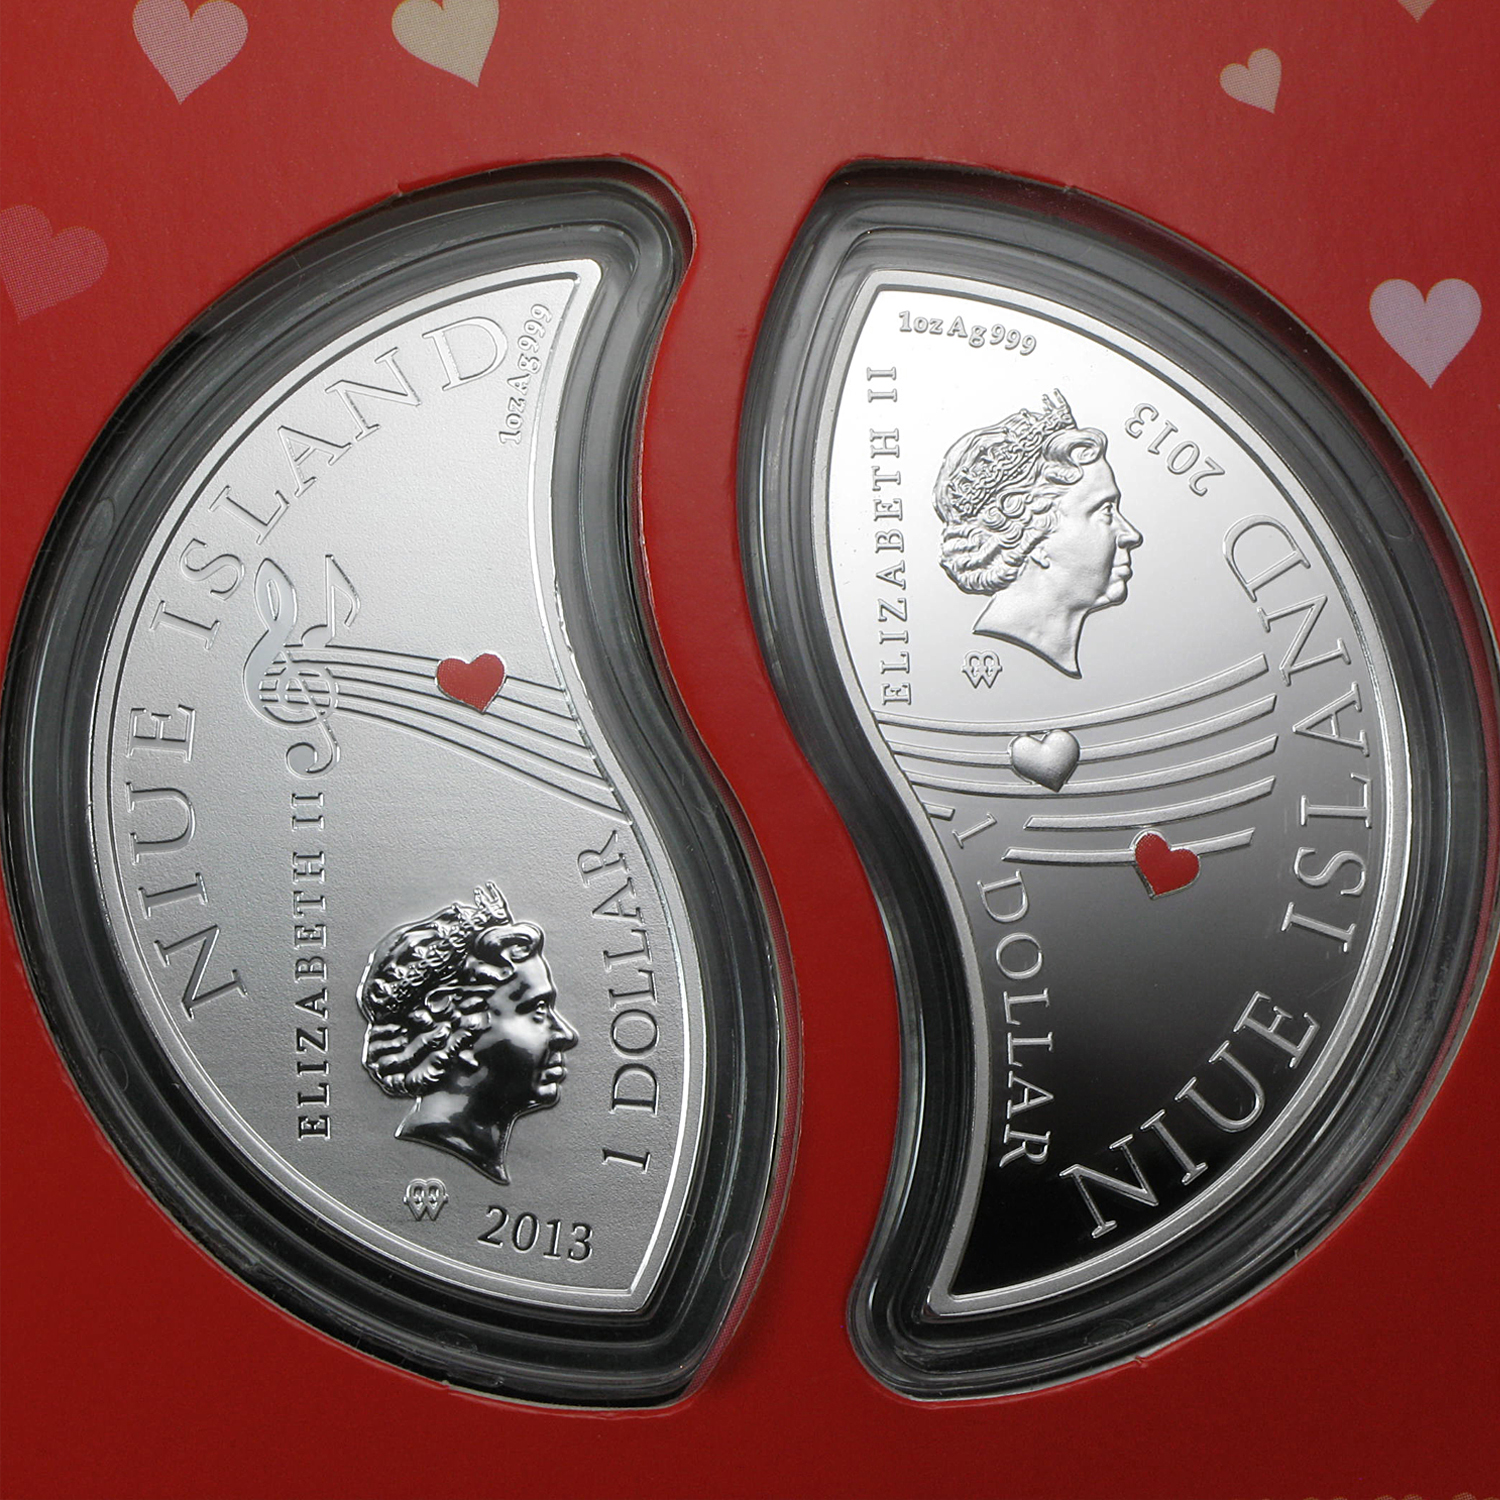 2013 Niue 2-Coin 2 oz Silver $1 In Love Proof Set (Toned)